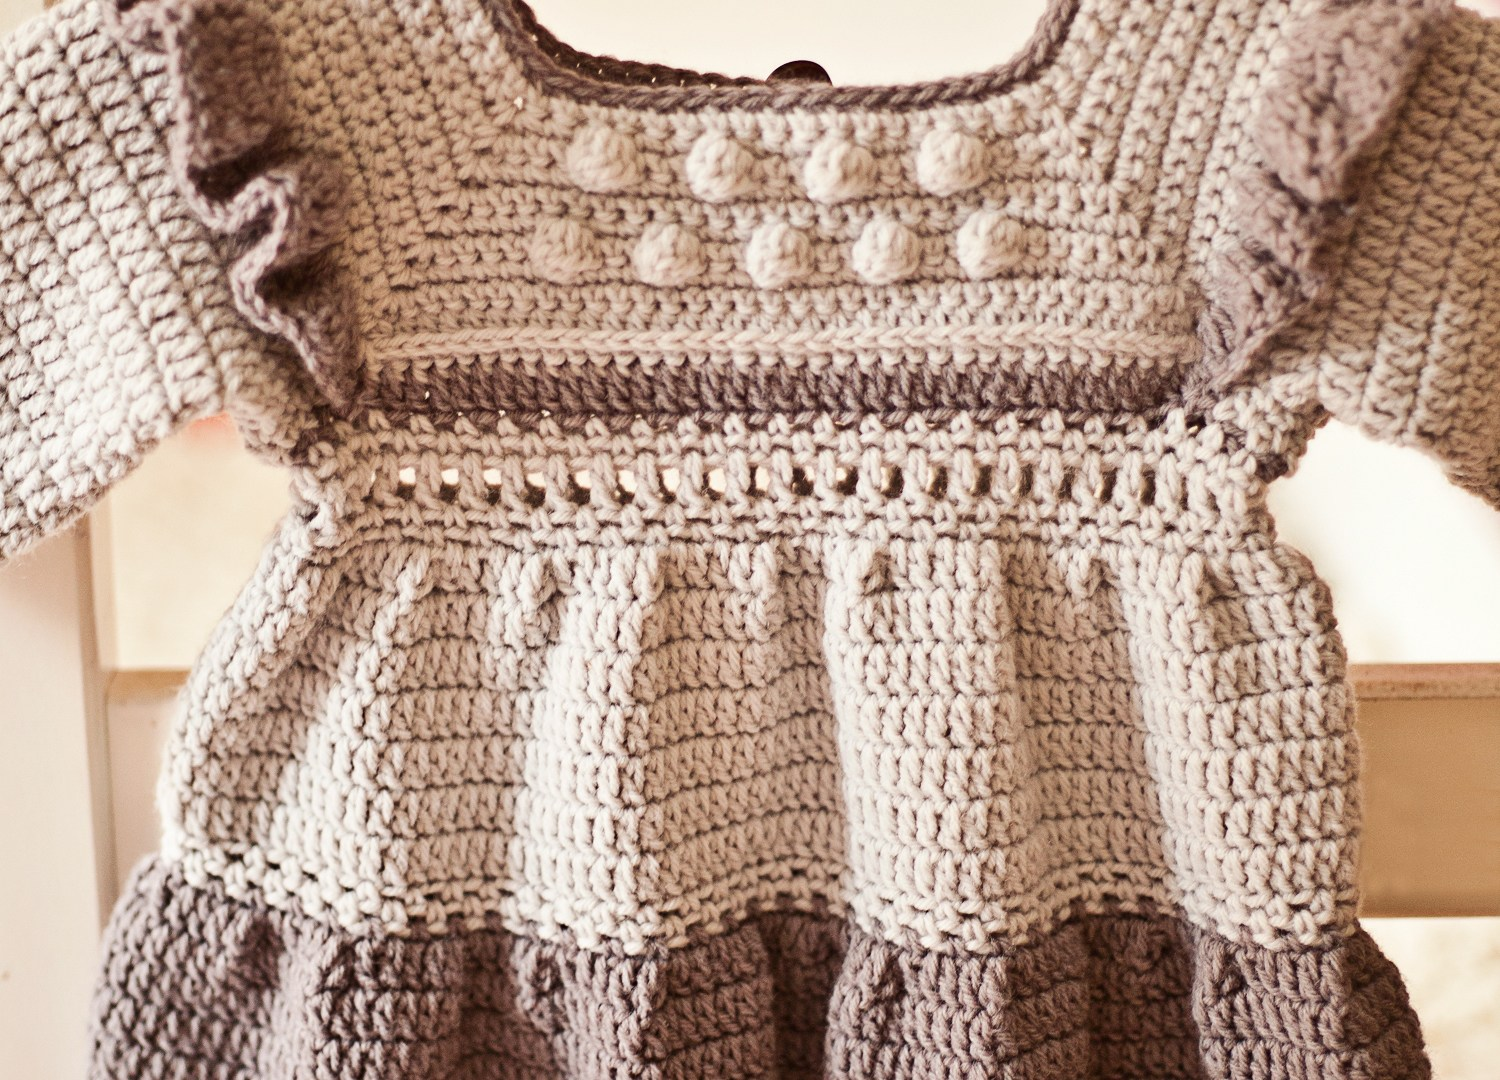 New dress pattern – Heather Tiered Dress with Frills